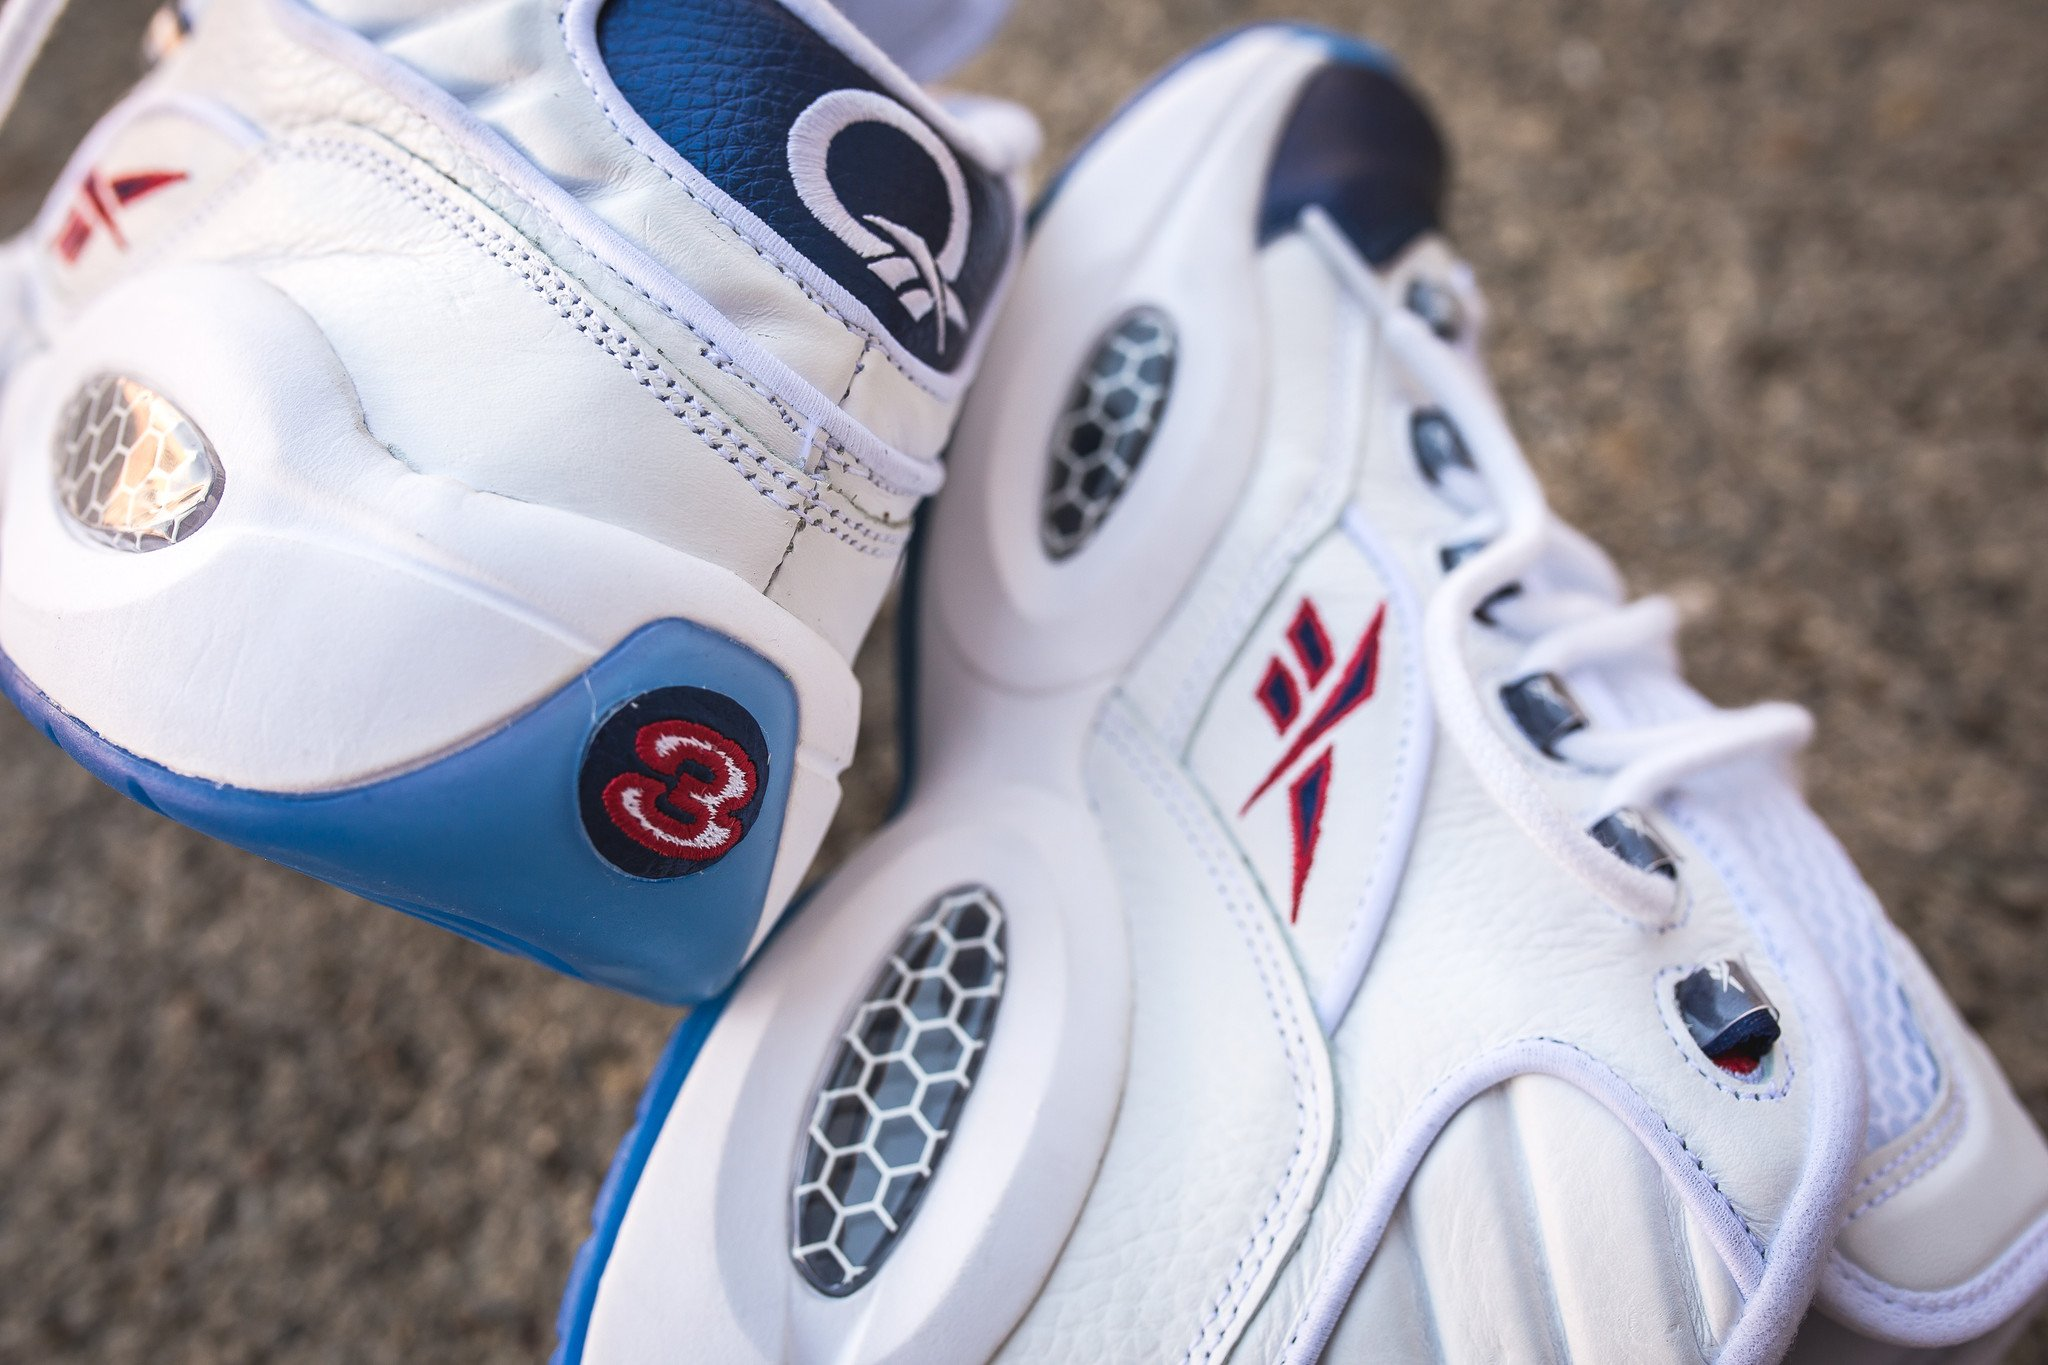 the-reebok-question-blue-toe-releases-in-limited-numbers-5